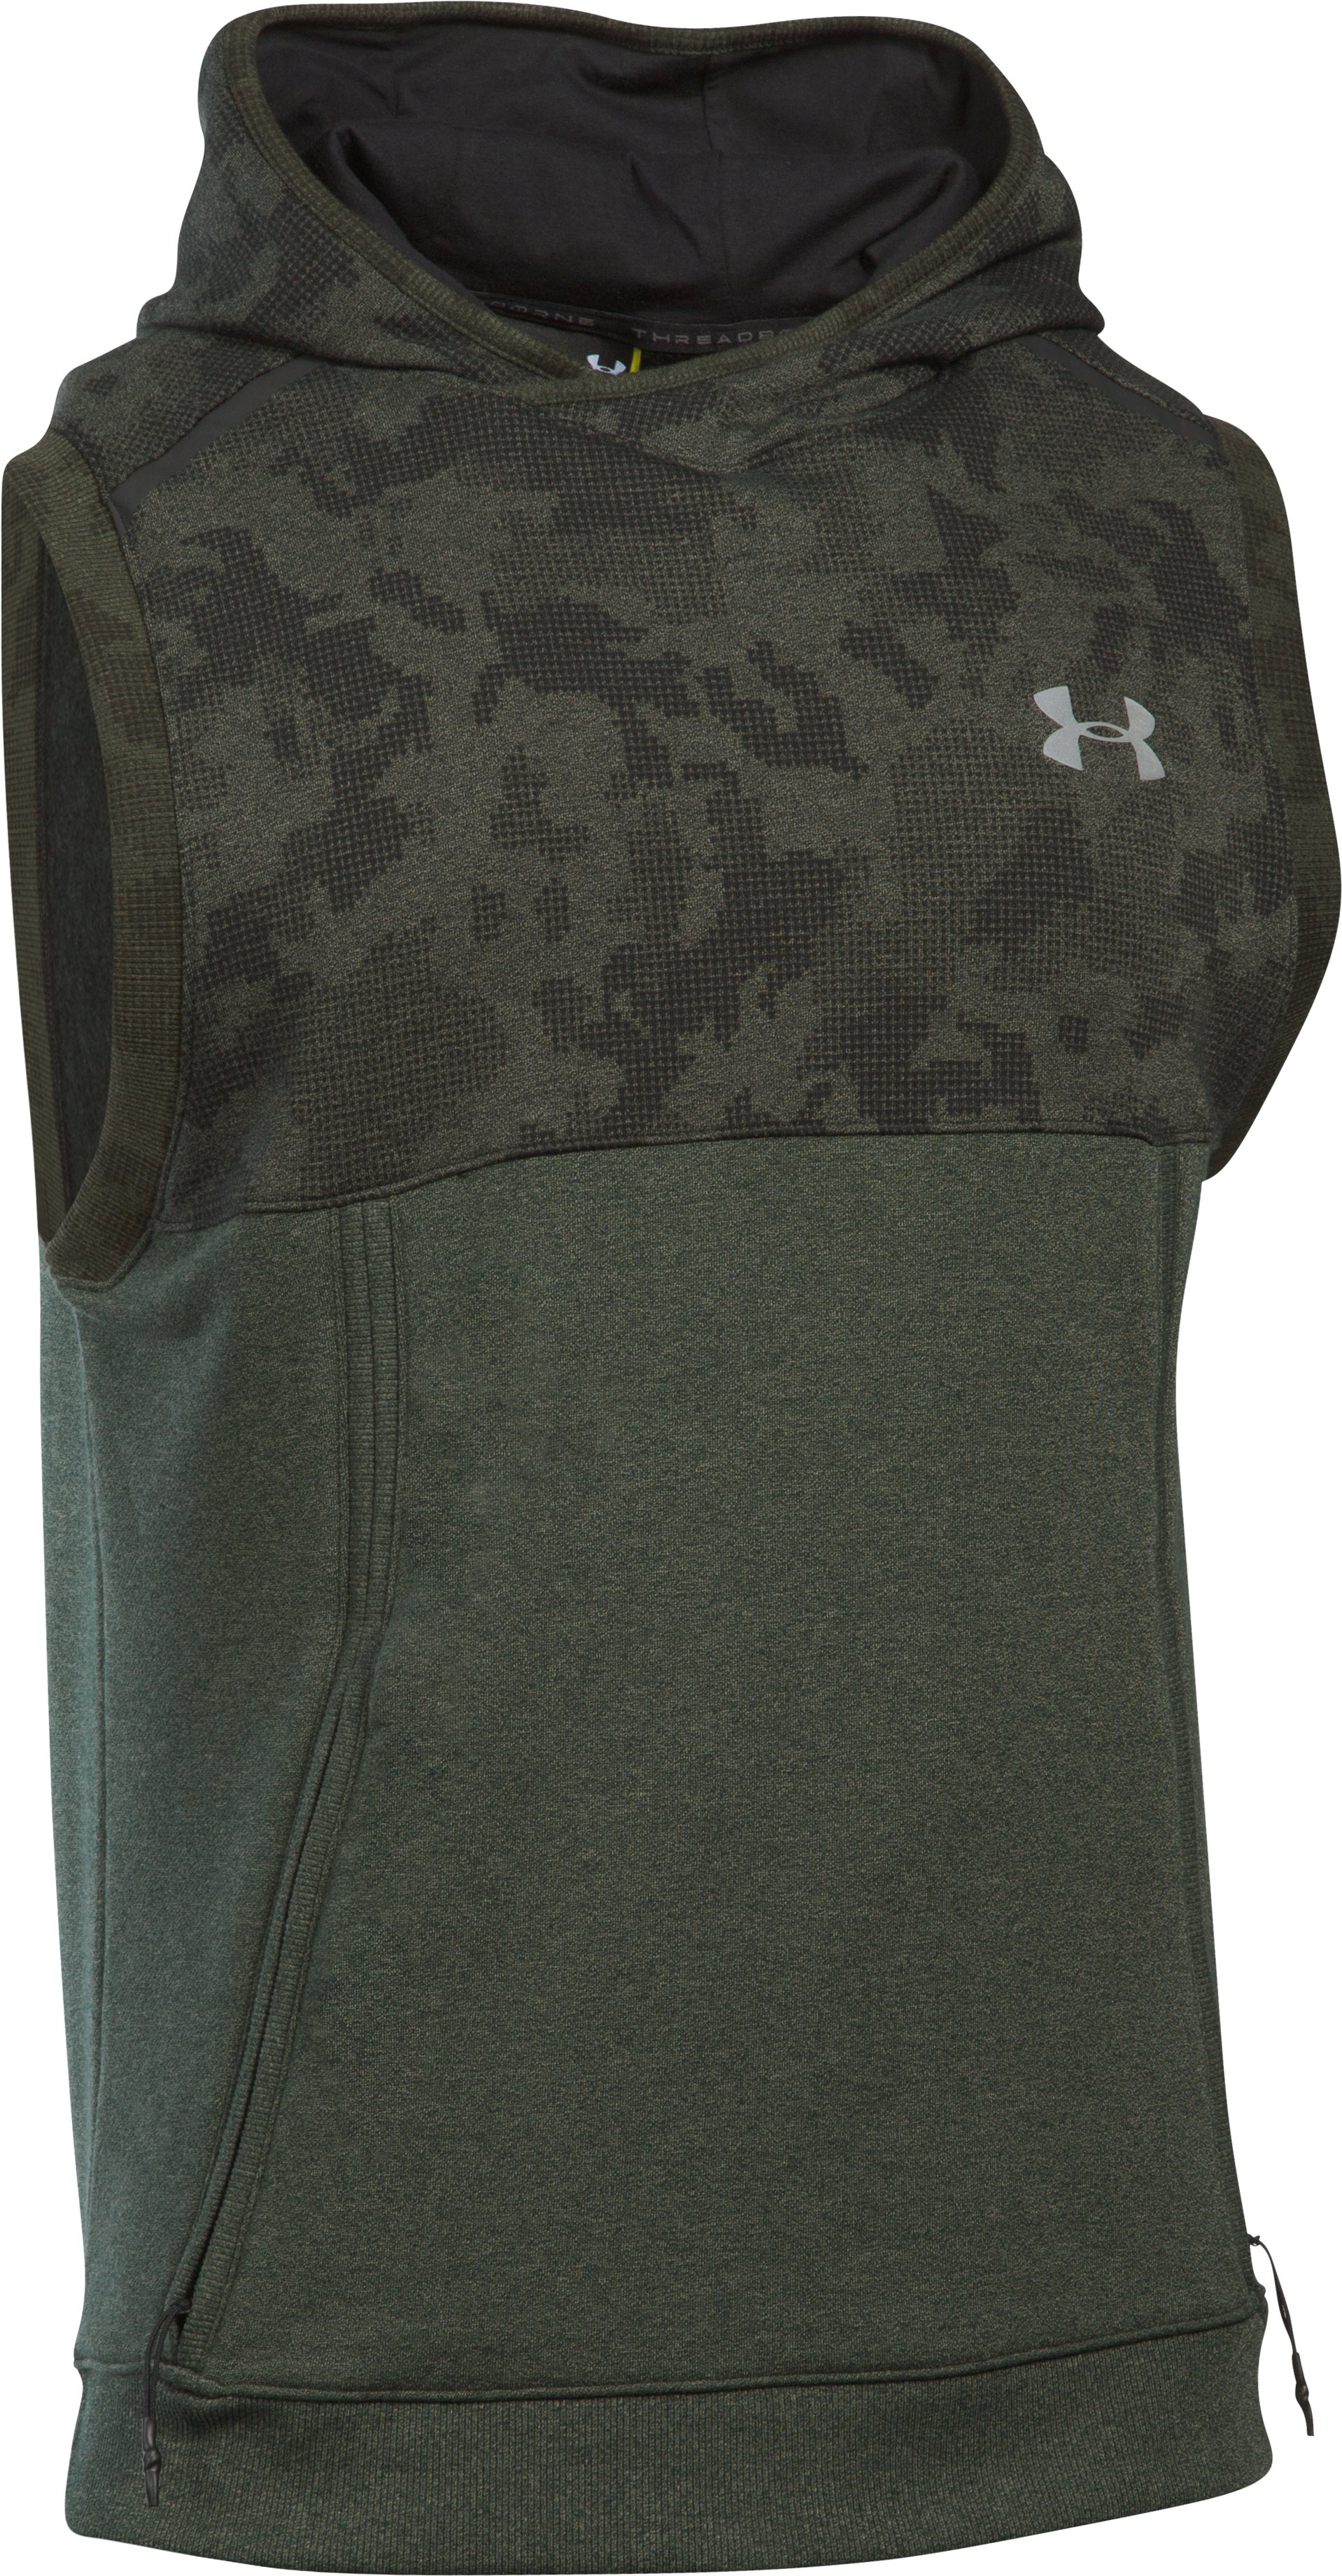 Men's UA Threadborne™ Fleece Sleeveless Hoodie, DOWNTOWN GREEN, undefined